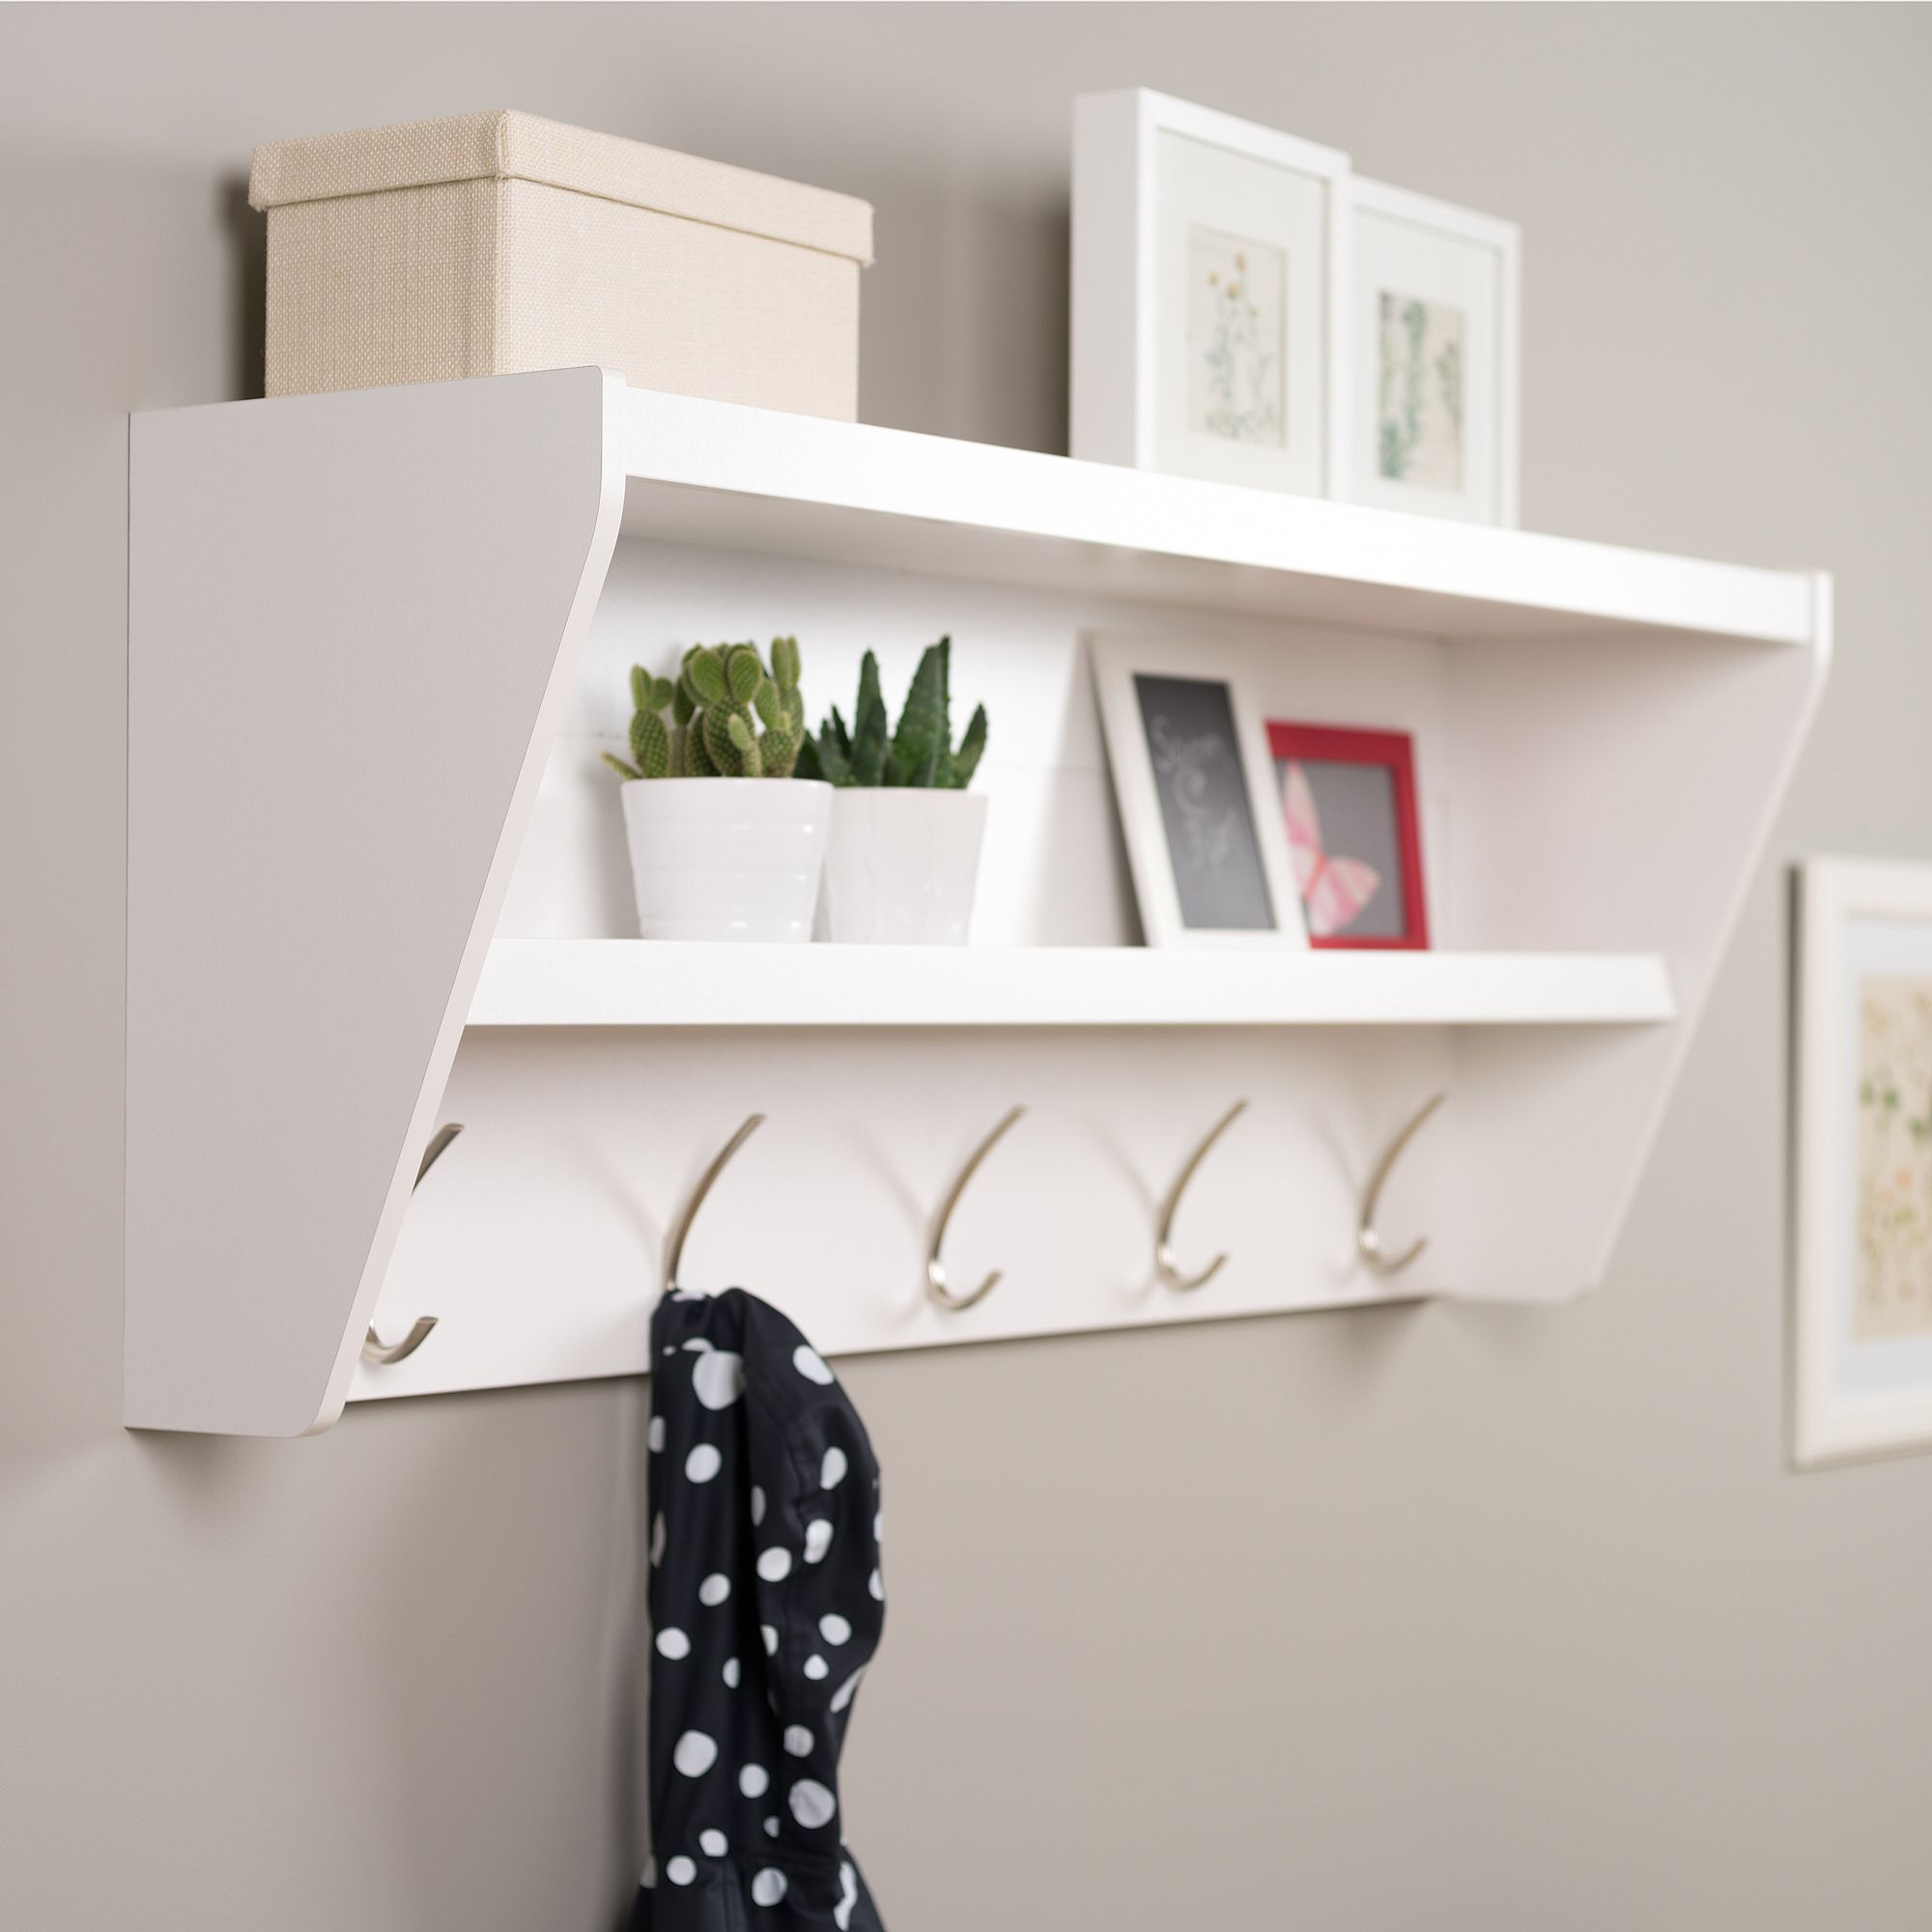 Image Result For Unique Wall Mounted Entryway Coat Rack With Storage Cubbies And Shelves